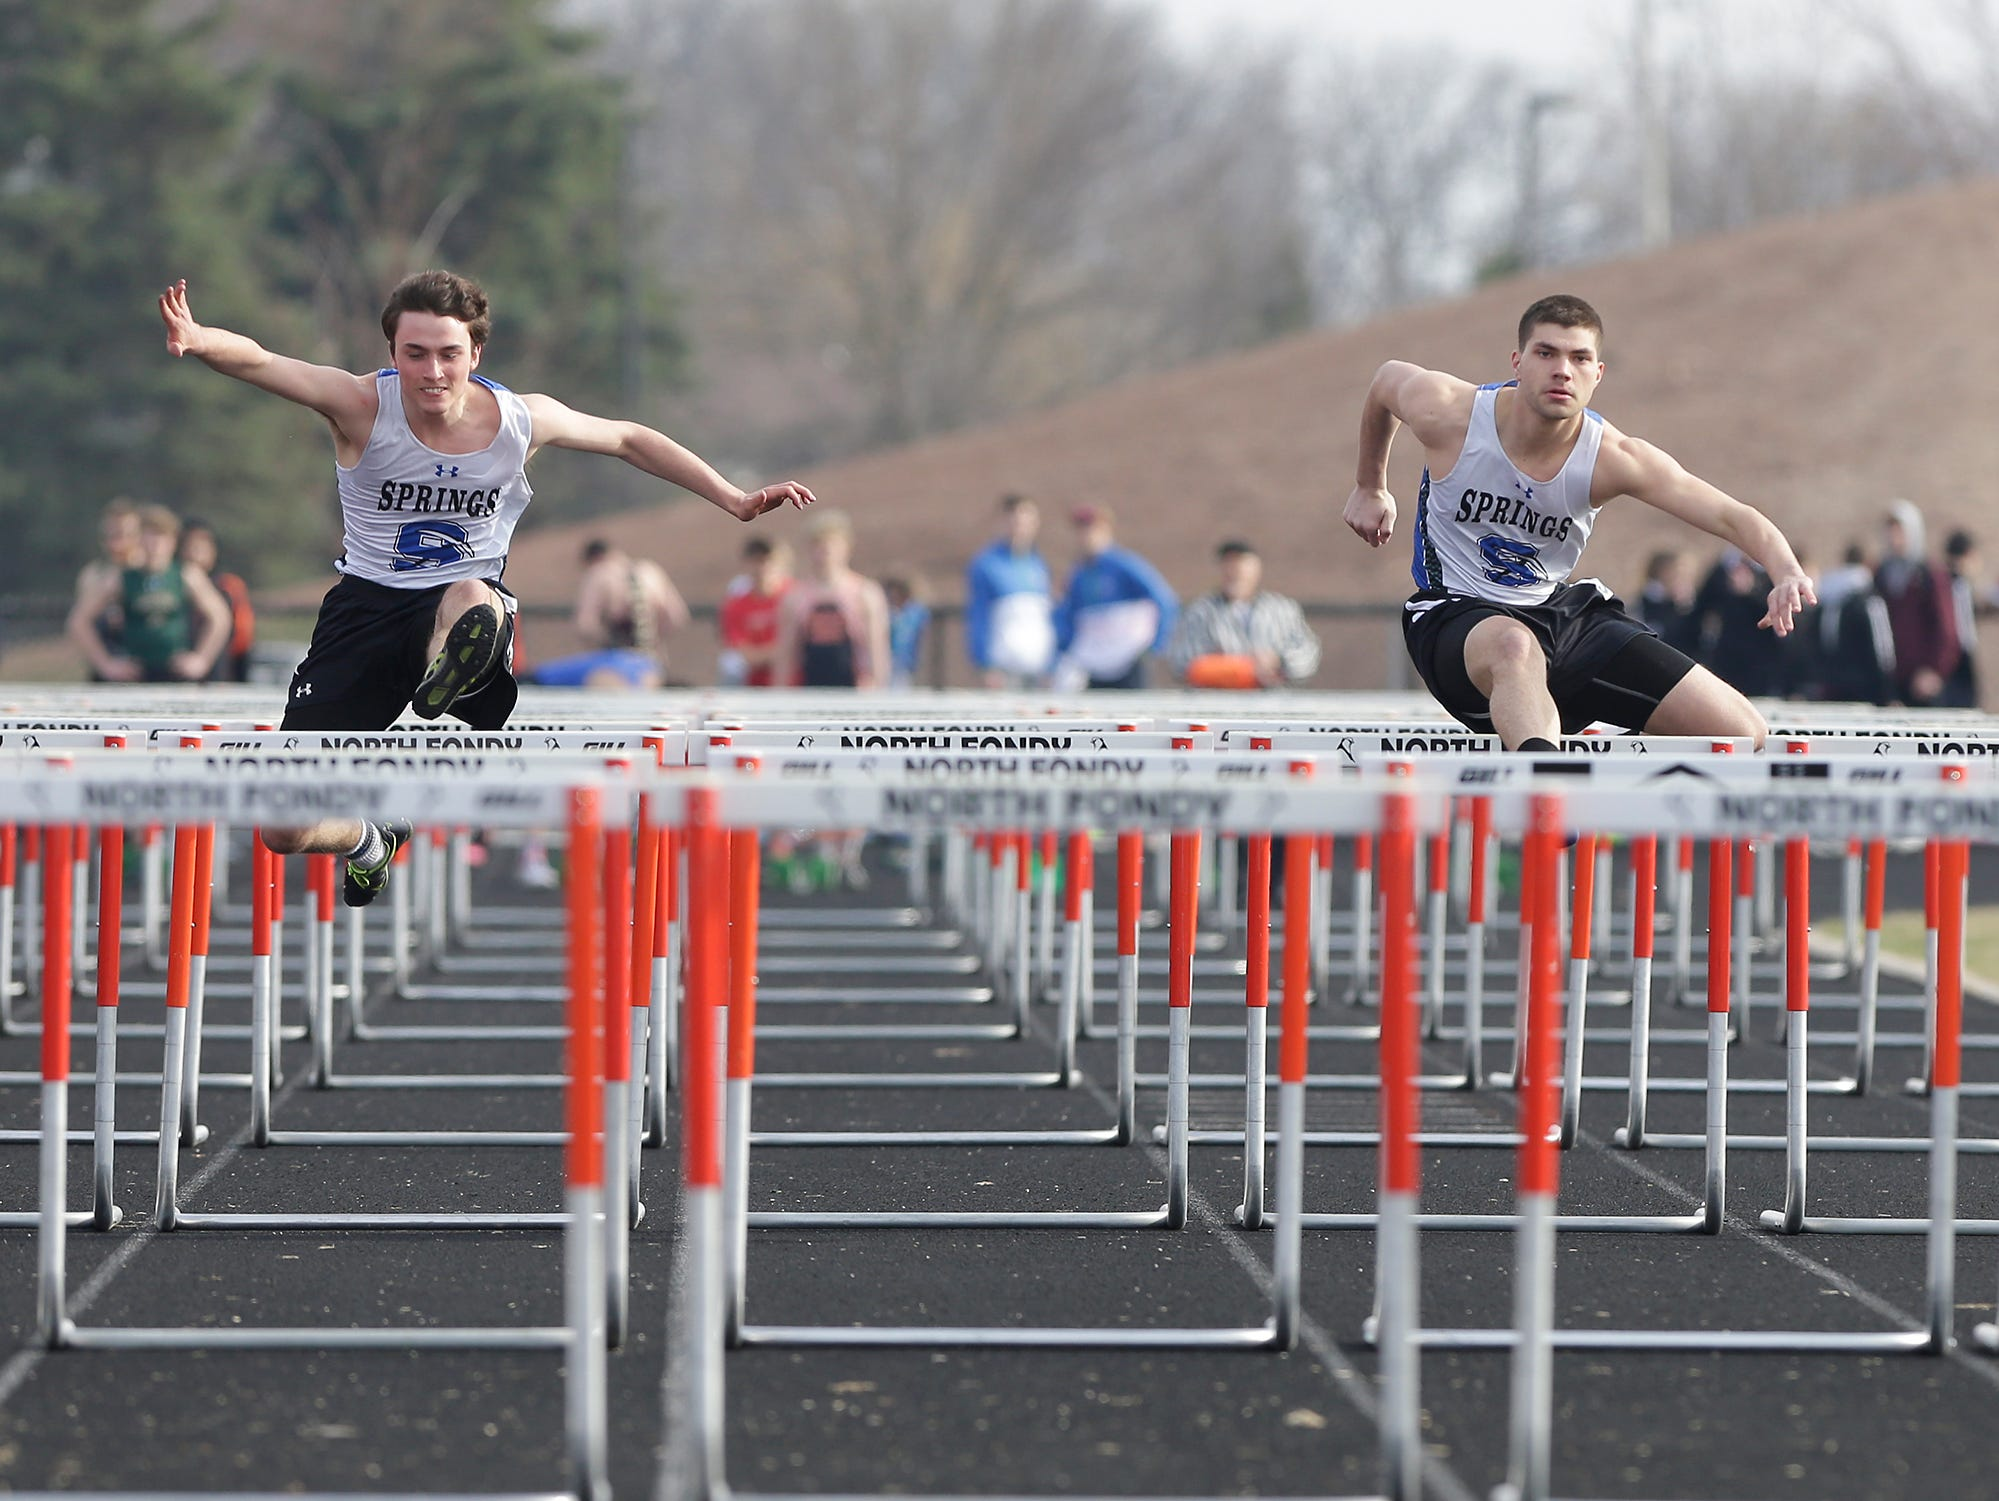 St Mary's Springs's Tim Schuessler and Sam Skiff take part in the boys 110 meter hurdles Tuesday, April 16, 2019 at North Fond du Lac High School in North Fond du Lac, Wis. Doug Raflik/USA TODAY NETWORK-Wisconsin